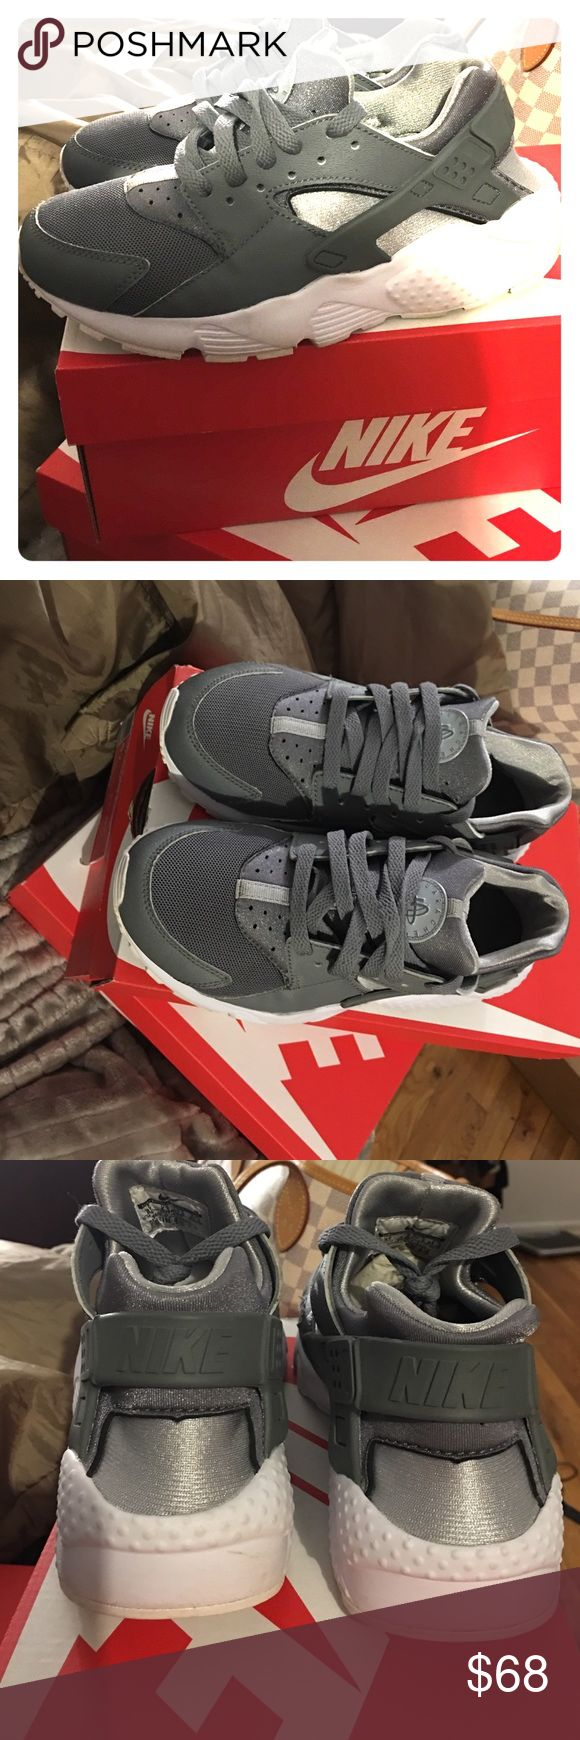 Cool grey. NIKE Huaraches runs (GS) 5Y. Barely used Cool Grey huaraches runs in size 5Y. I'm usually a size 6 so kids sizes in sneakers always fit. Worn atleast 3 times. In great condition. Nike Shoes Sneakers